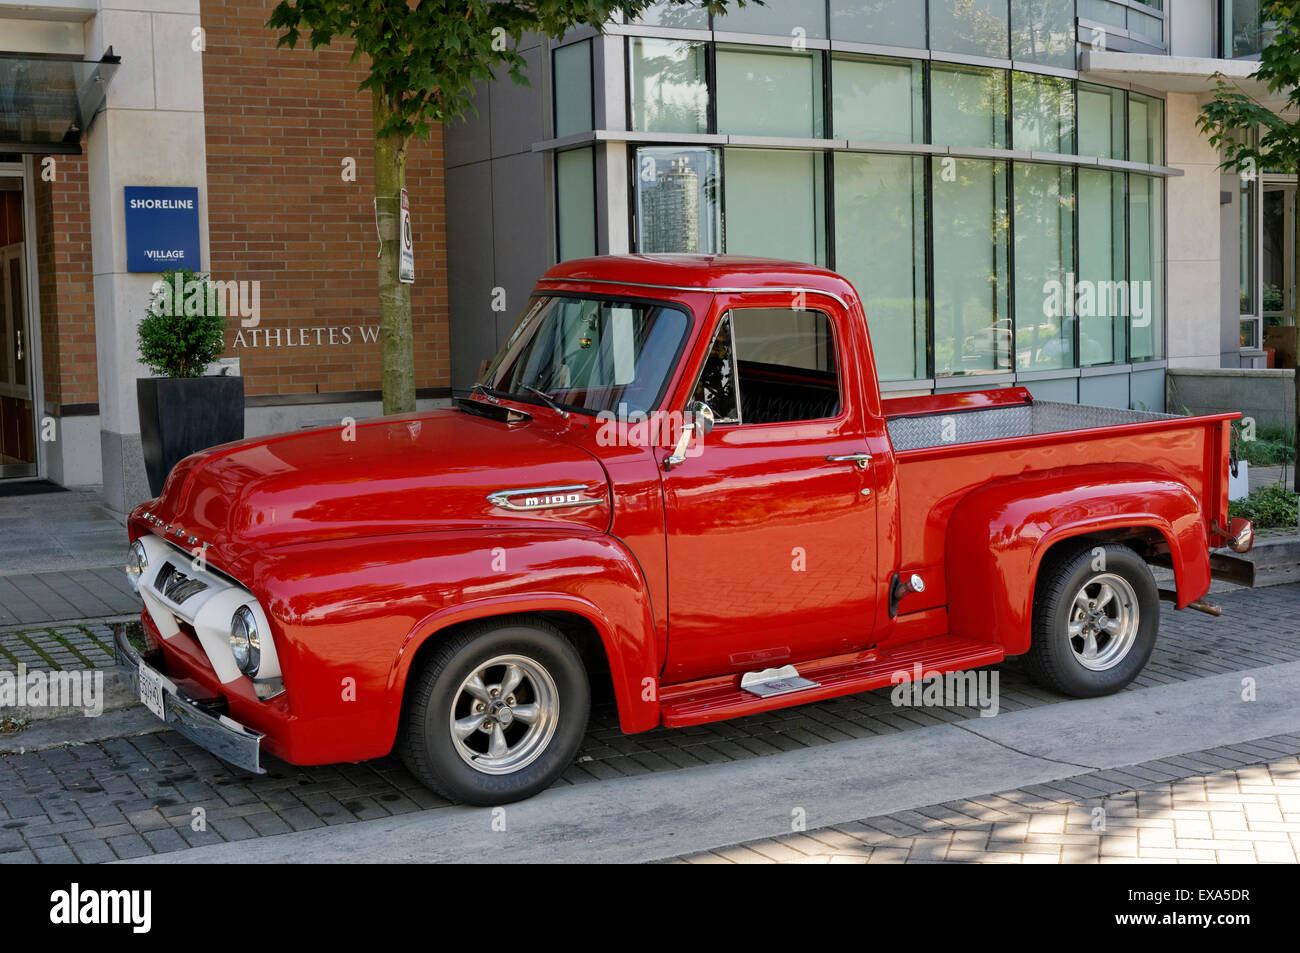 Vintage Red Ford Pickup Truck Stock Photos 1955 F100 Running Boards Restored 1950s Mercury M150 Image